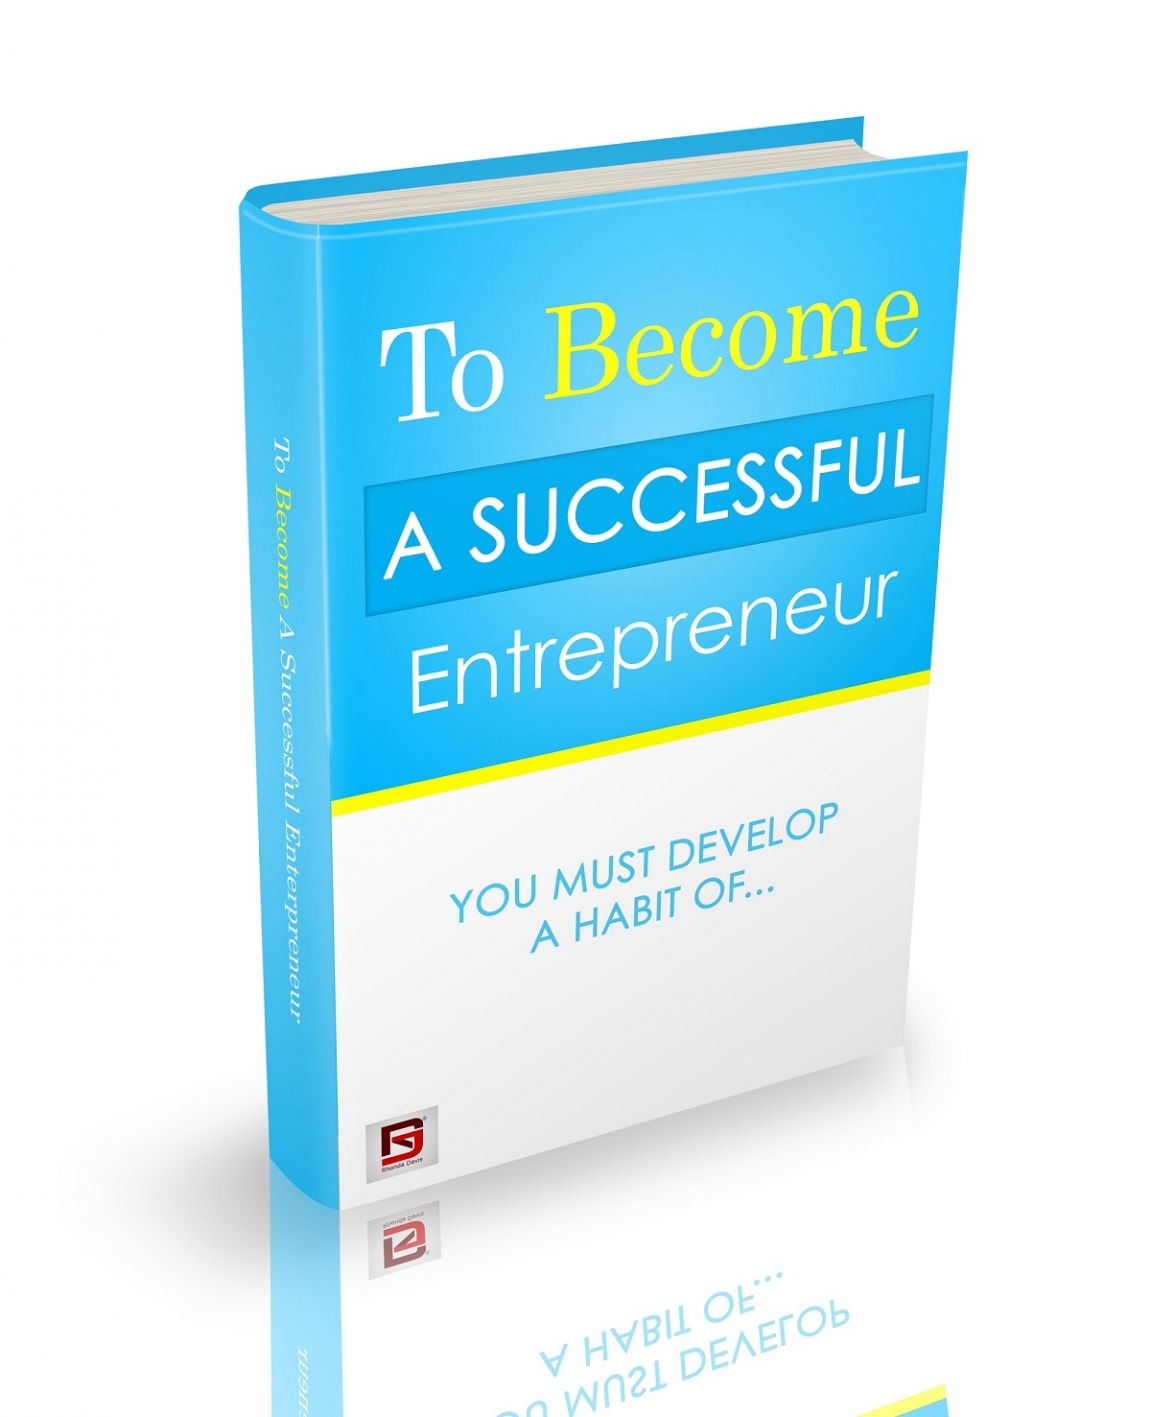 To Become A Successful Entrepreneur You Must Develop a Habit Of...